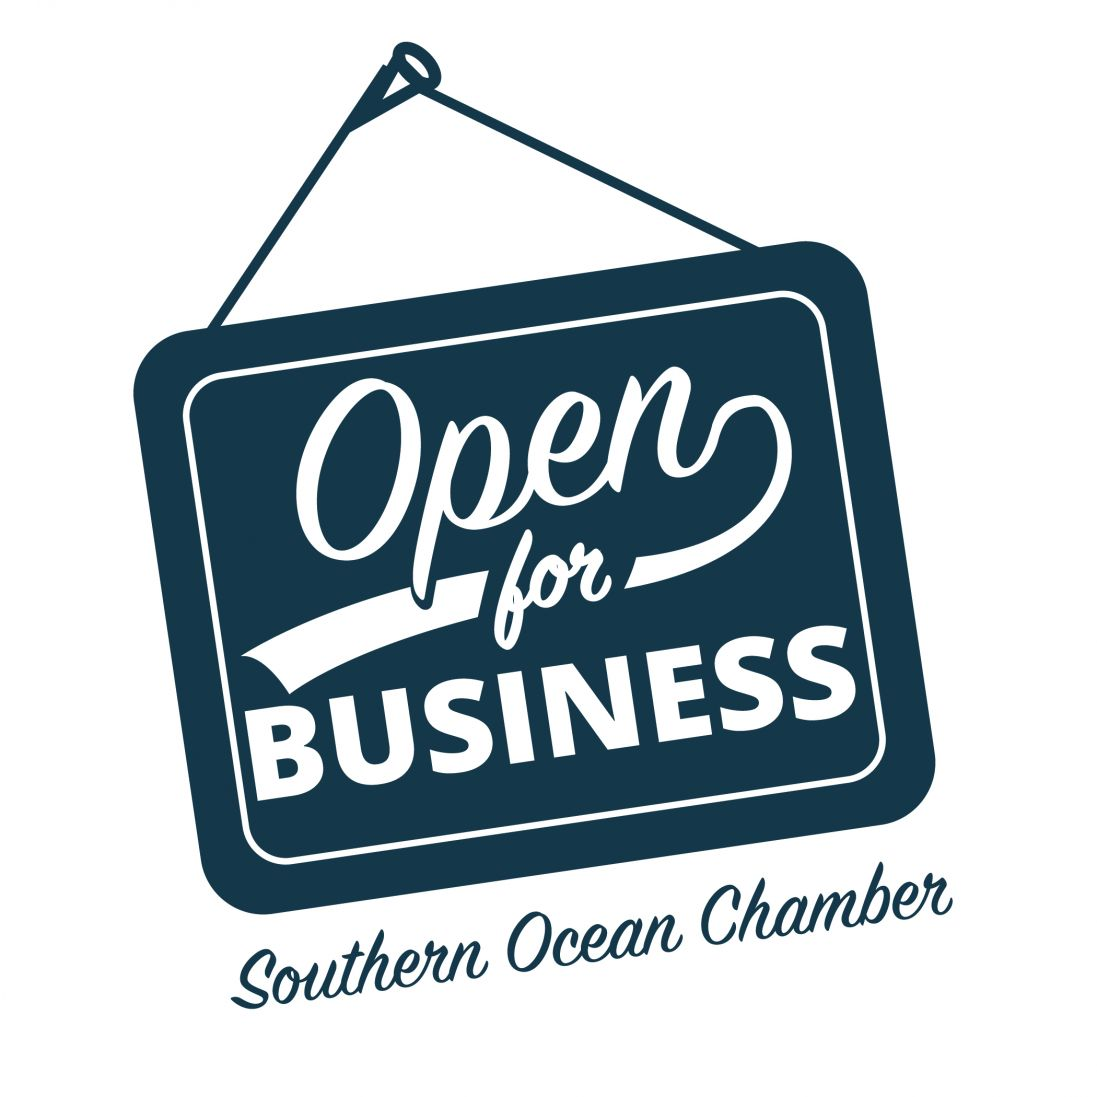 Support Small Business Week